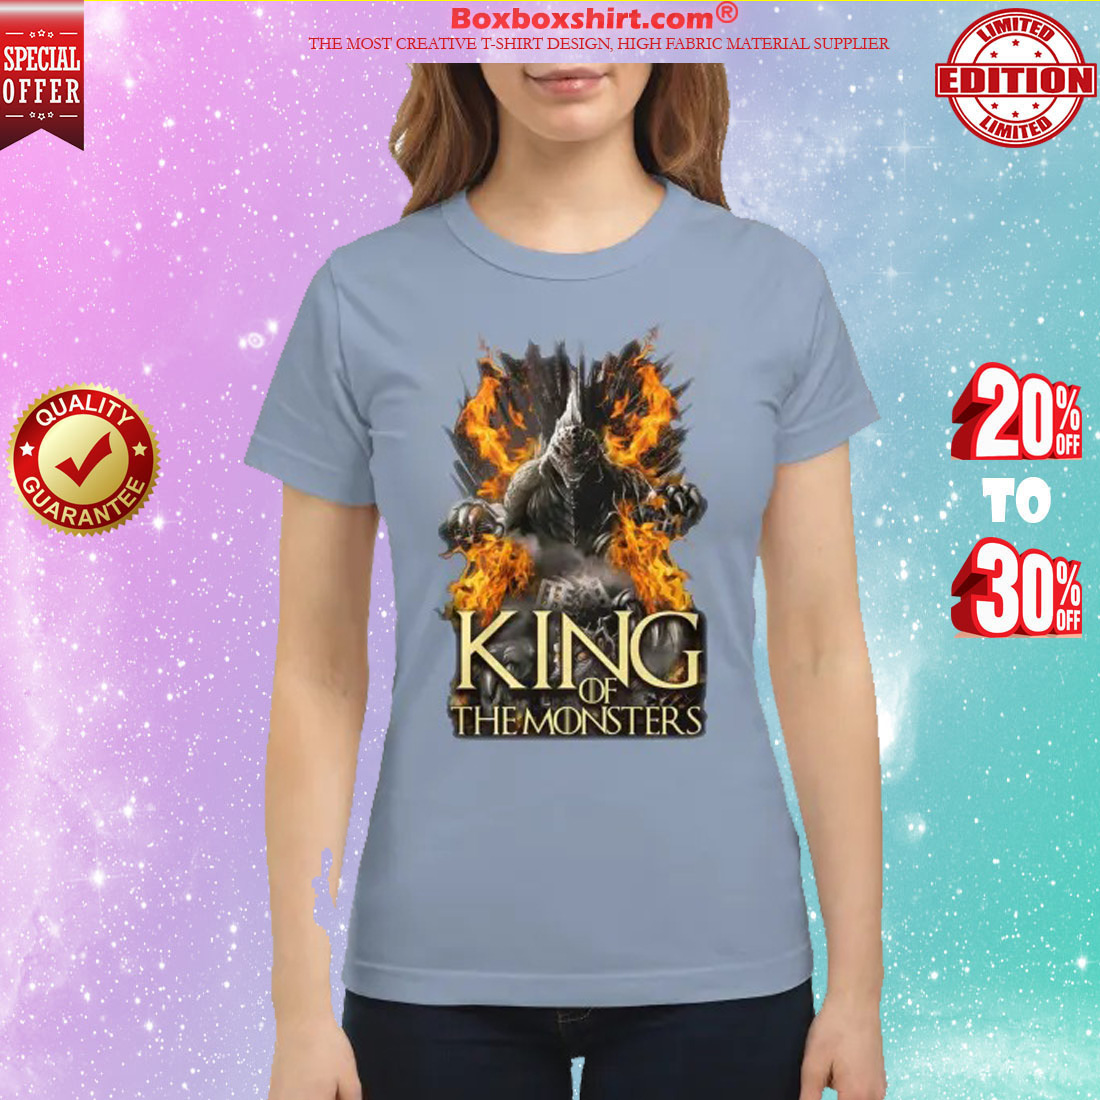 Godzilla king of the monsters classic shirt